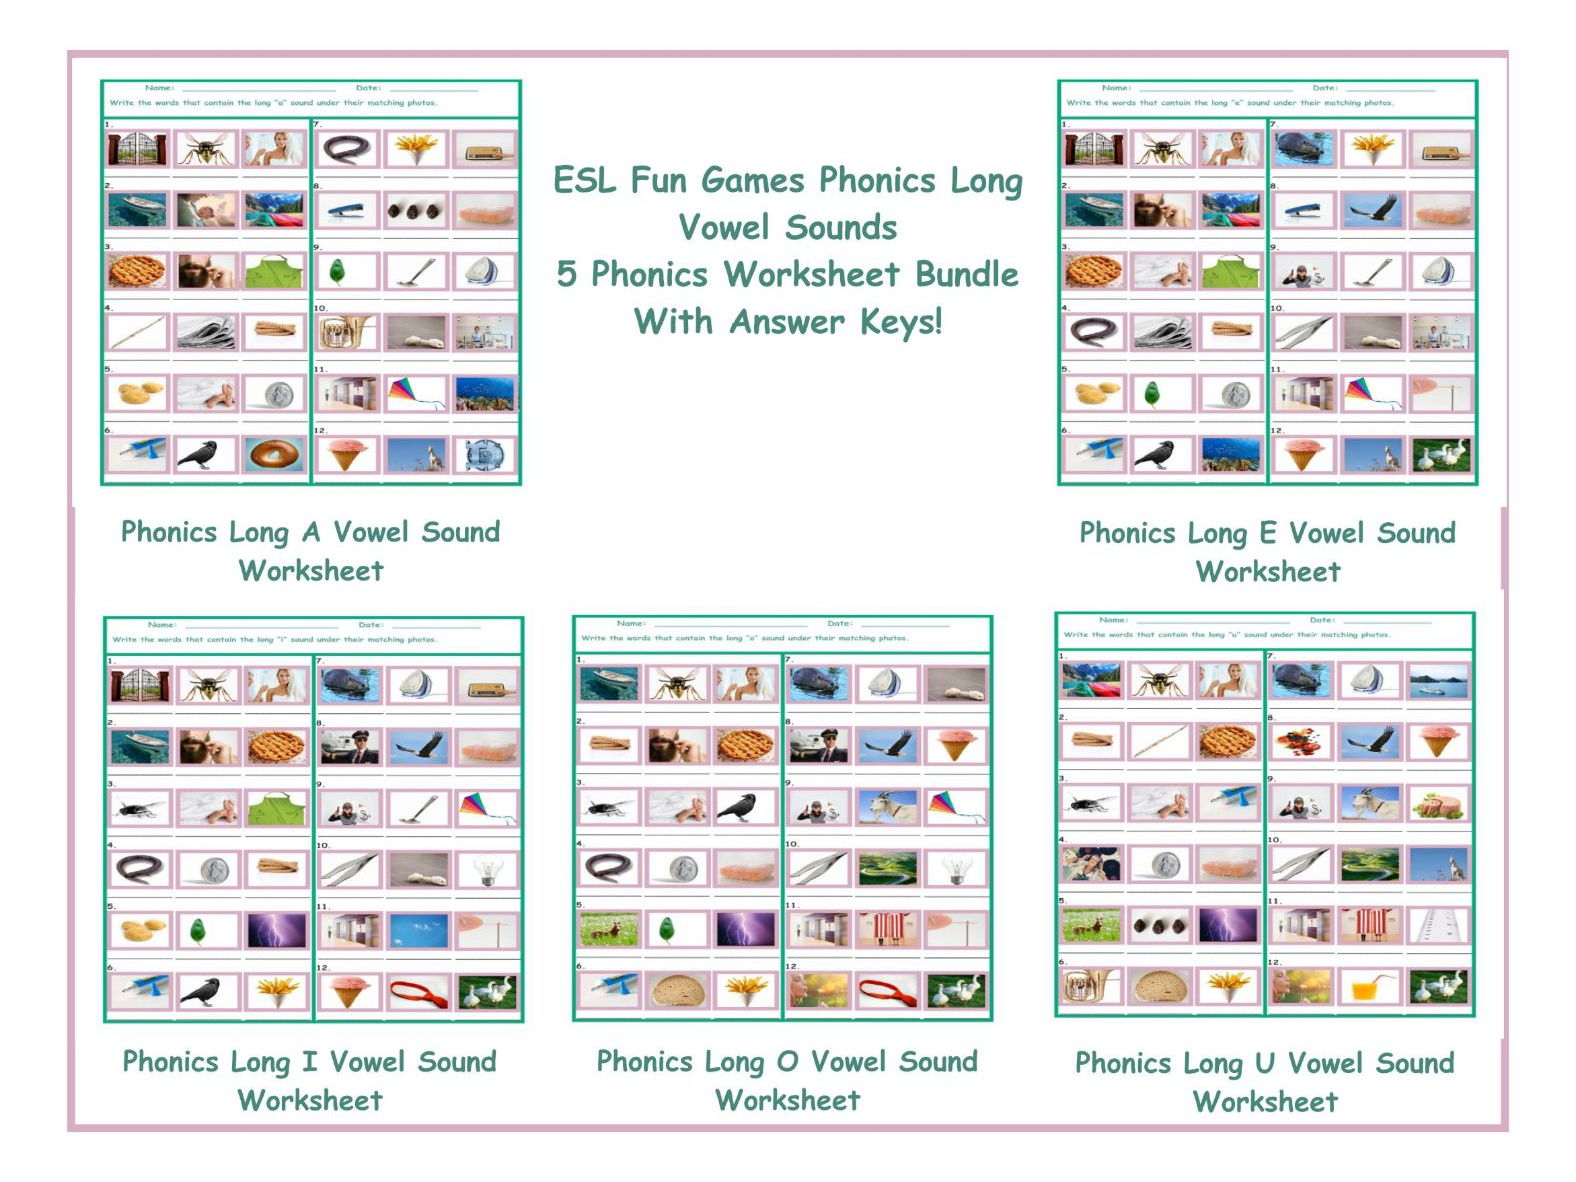 Phonics Long Vowel Sounds 5 Worksheet Bundle By Eslfungames